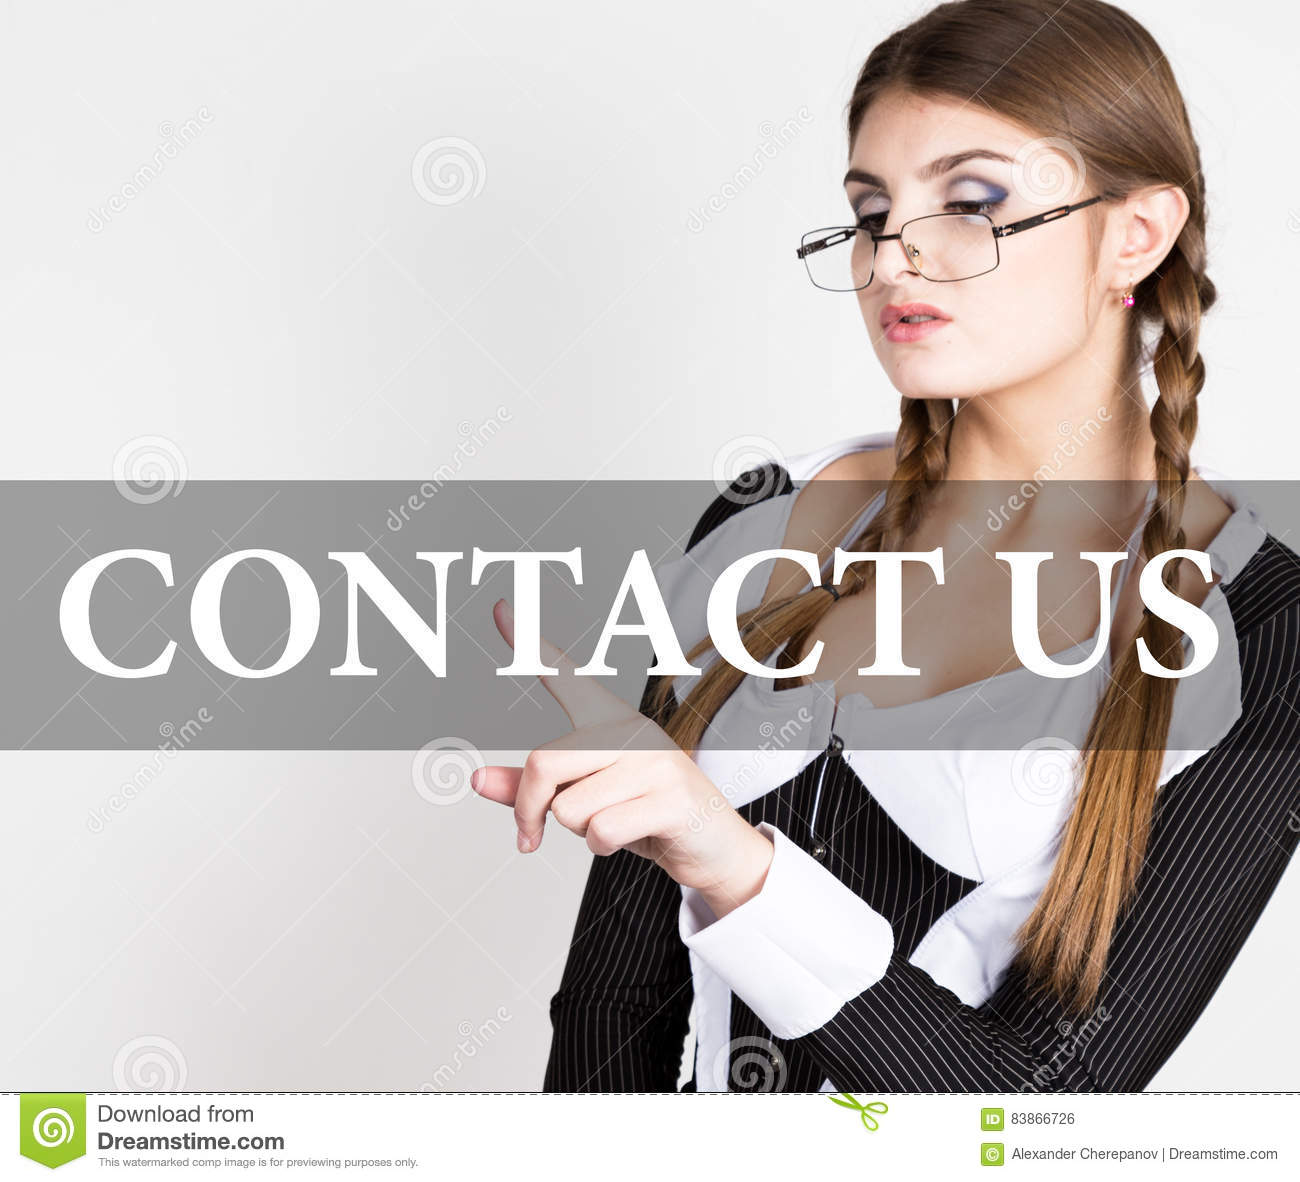 Contact Us Written On Virtual Screen Secretary In A Business Suit